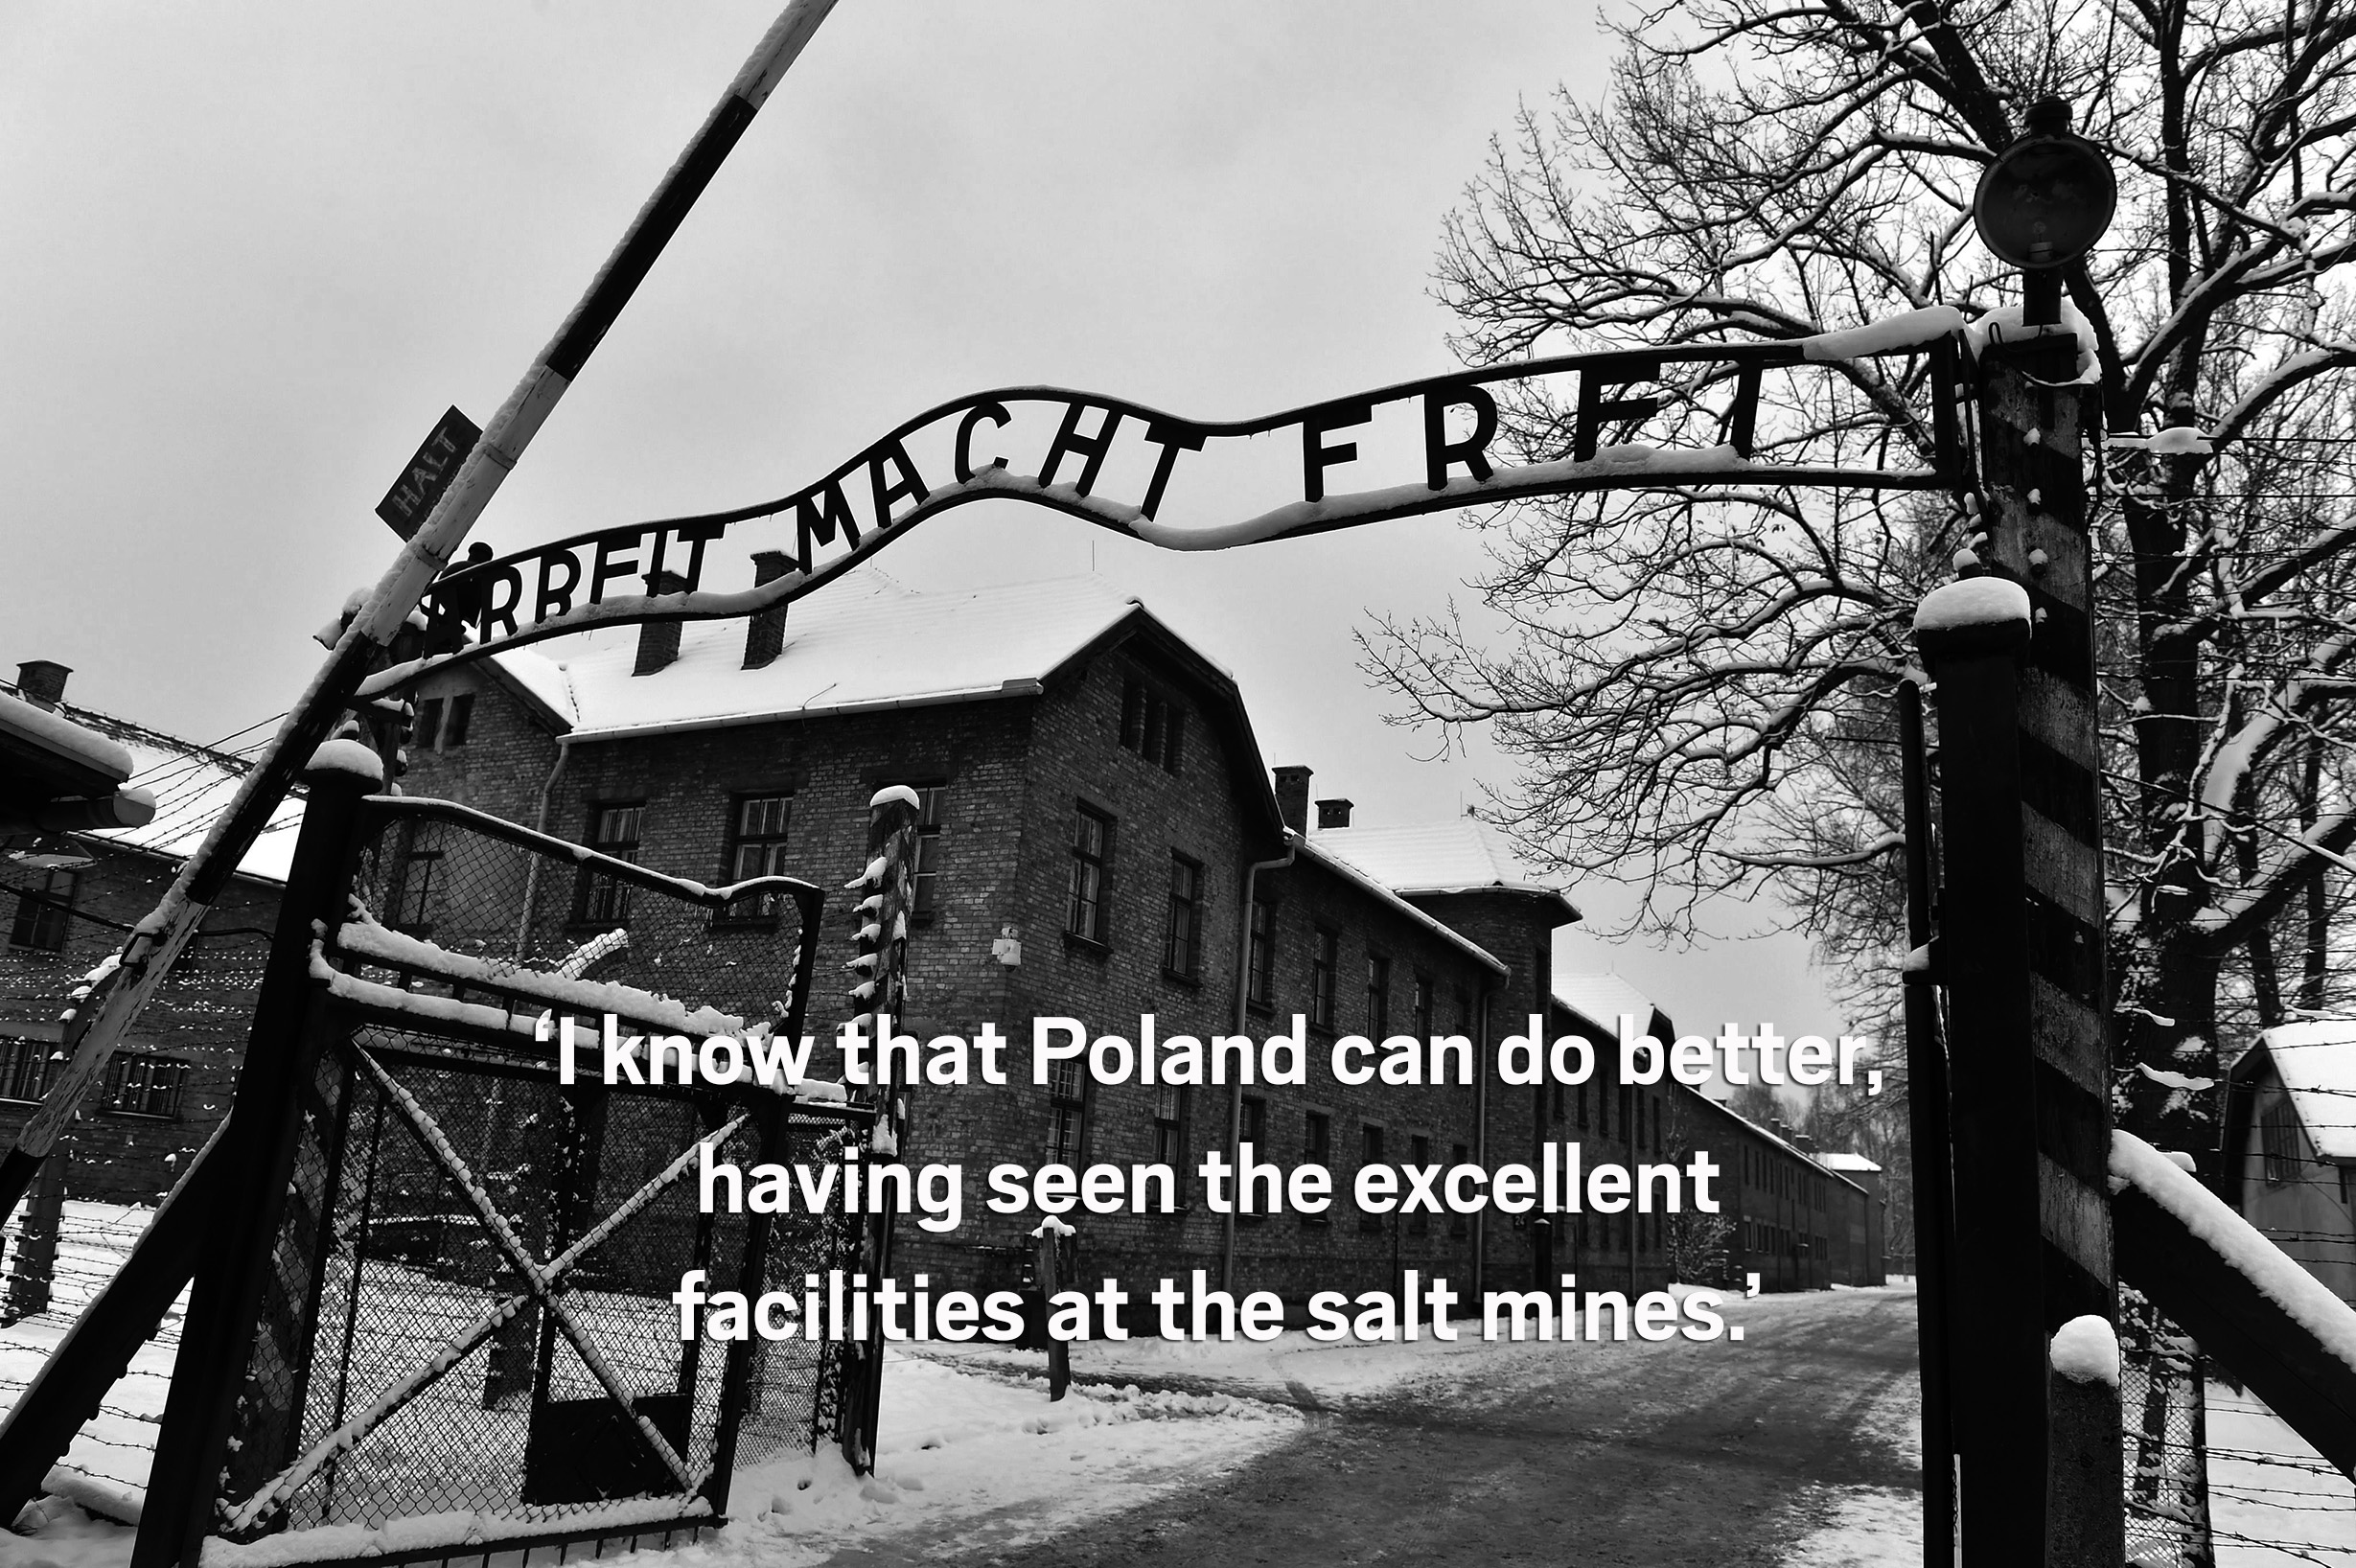 Auschwitz: 9 inappropriate TripAdvisor reviews from disappointed visitors